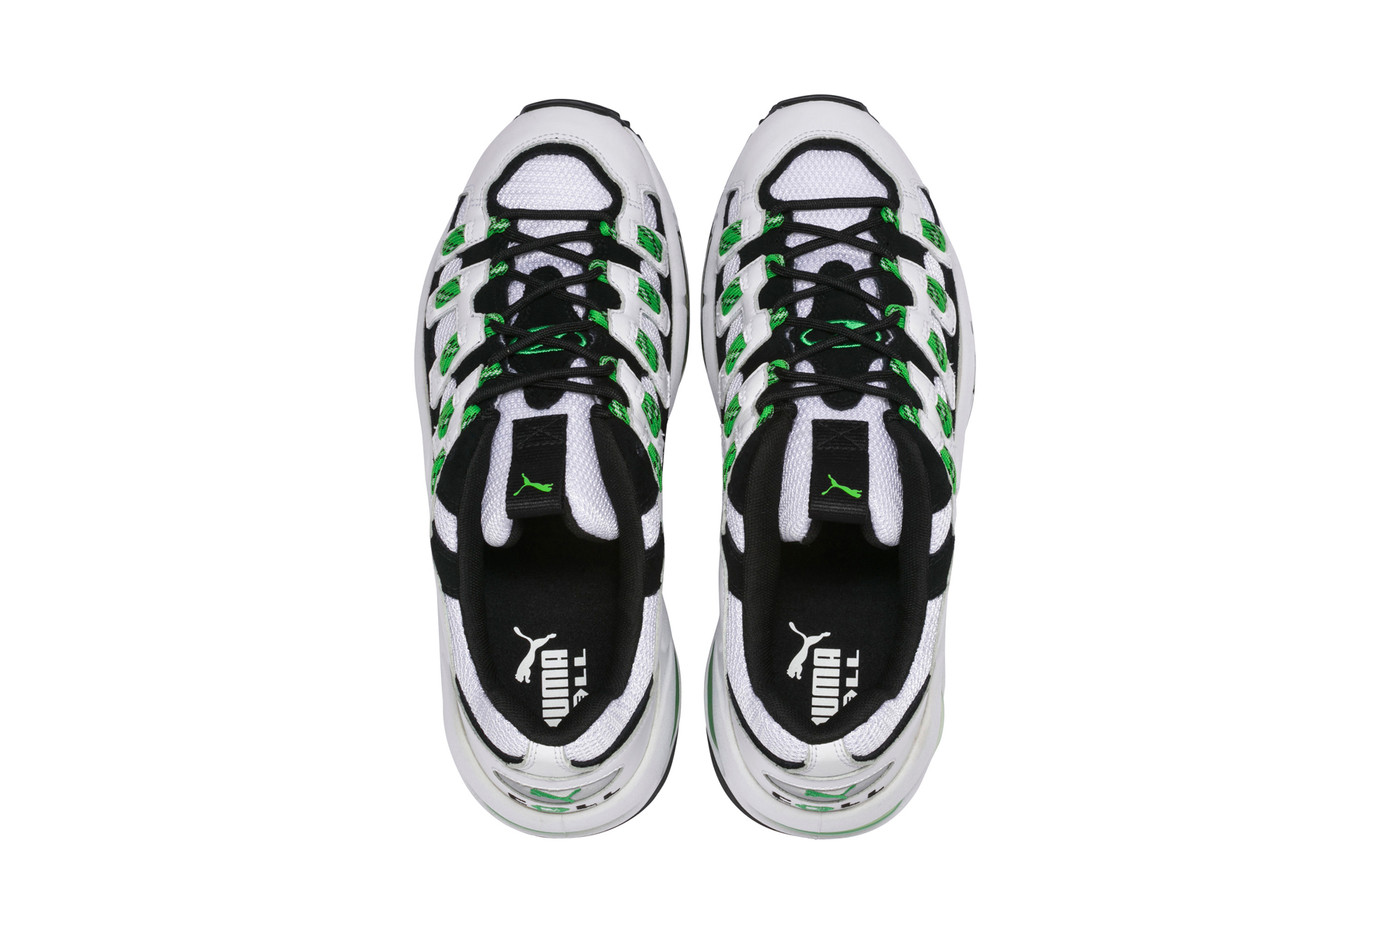 puma-cell-endura-release-white-surf-the-web-4